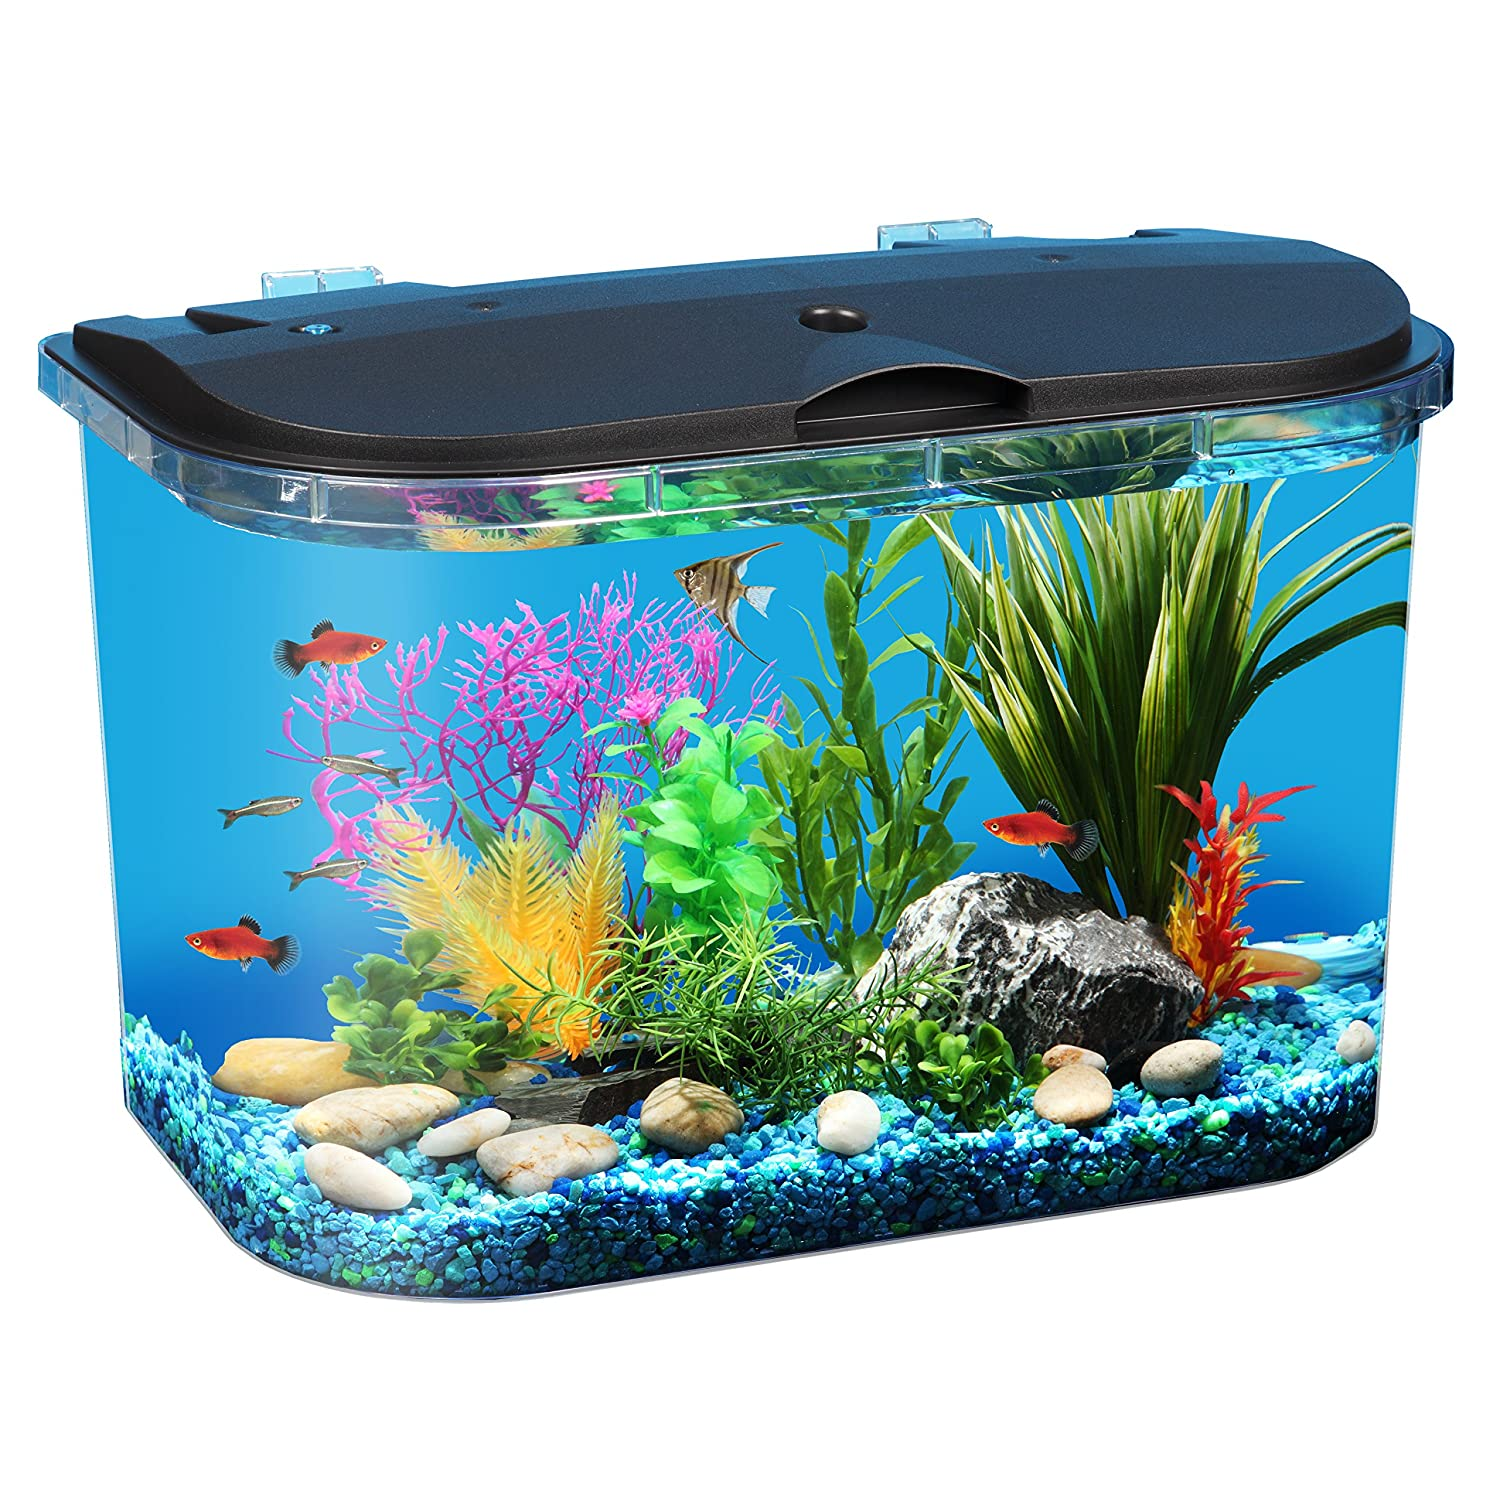 Amazon Koller Products Panaview 5 Gallon Aquarium Kit with LED